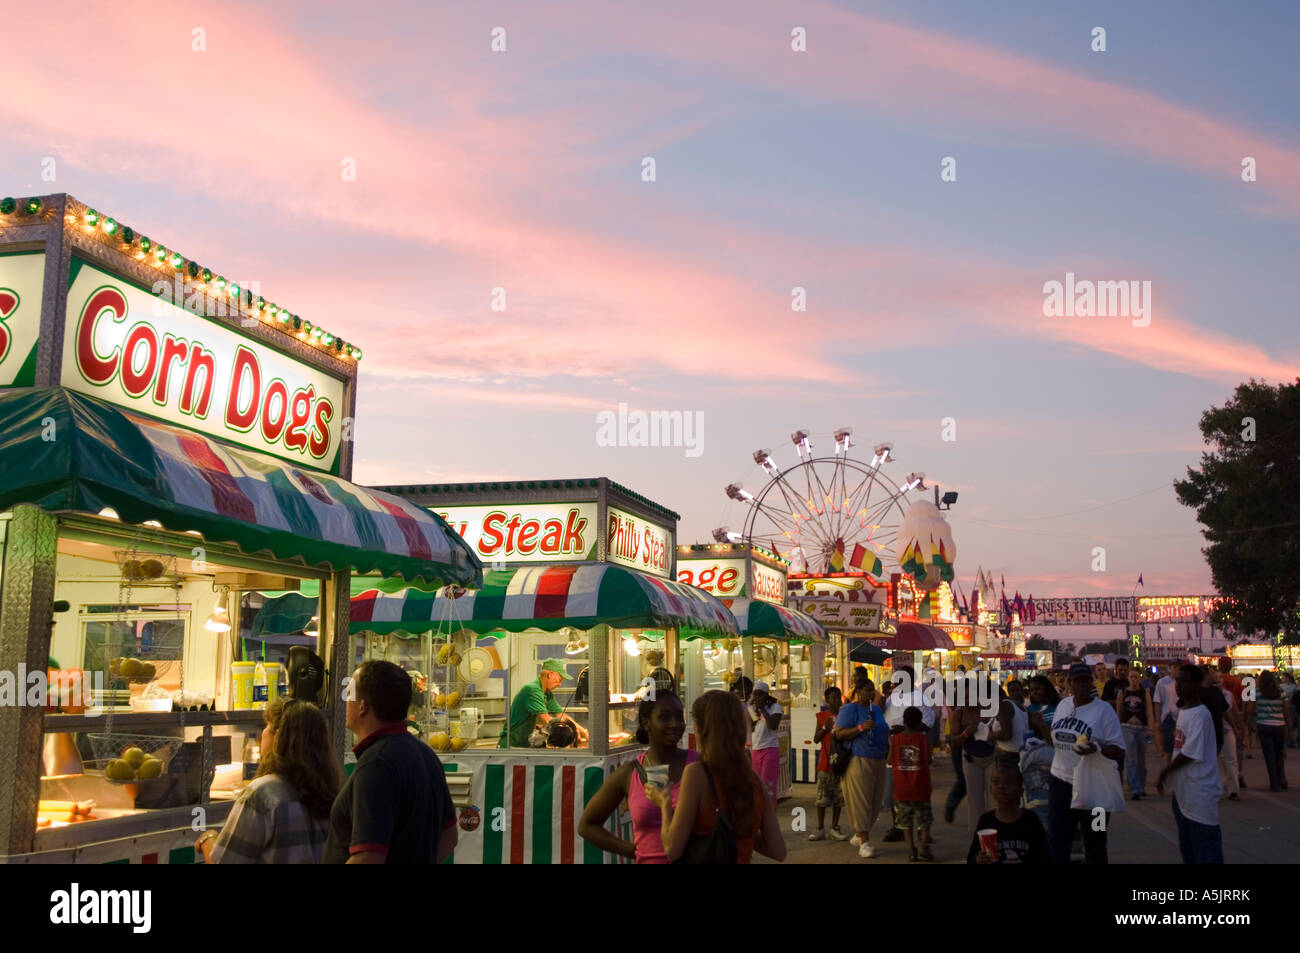 Food stands and ferris wheel at sunset at the Illinois State Fair in Springfield Illinois - Stock Image